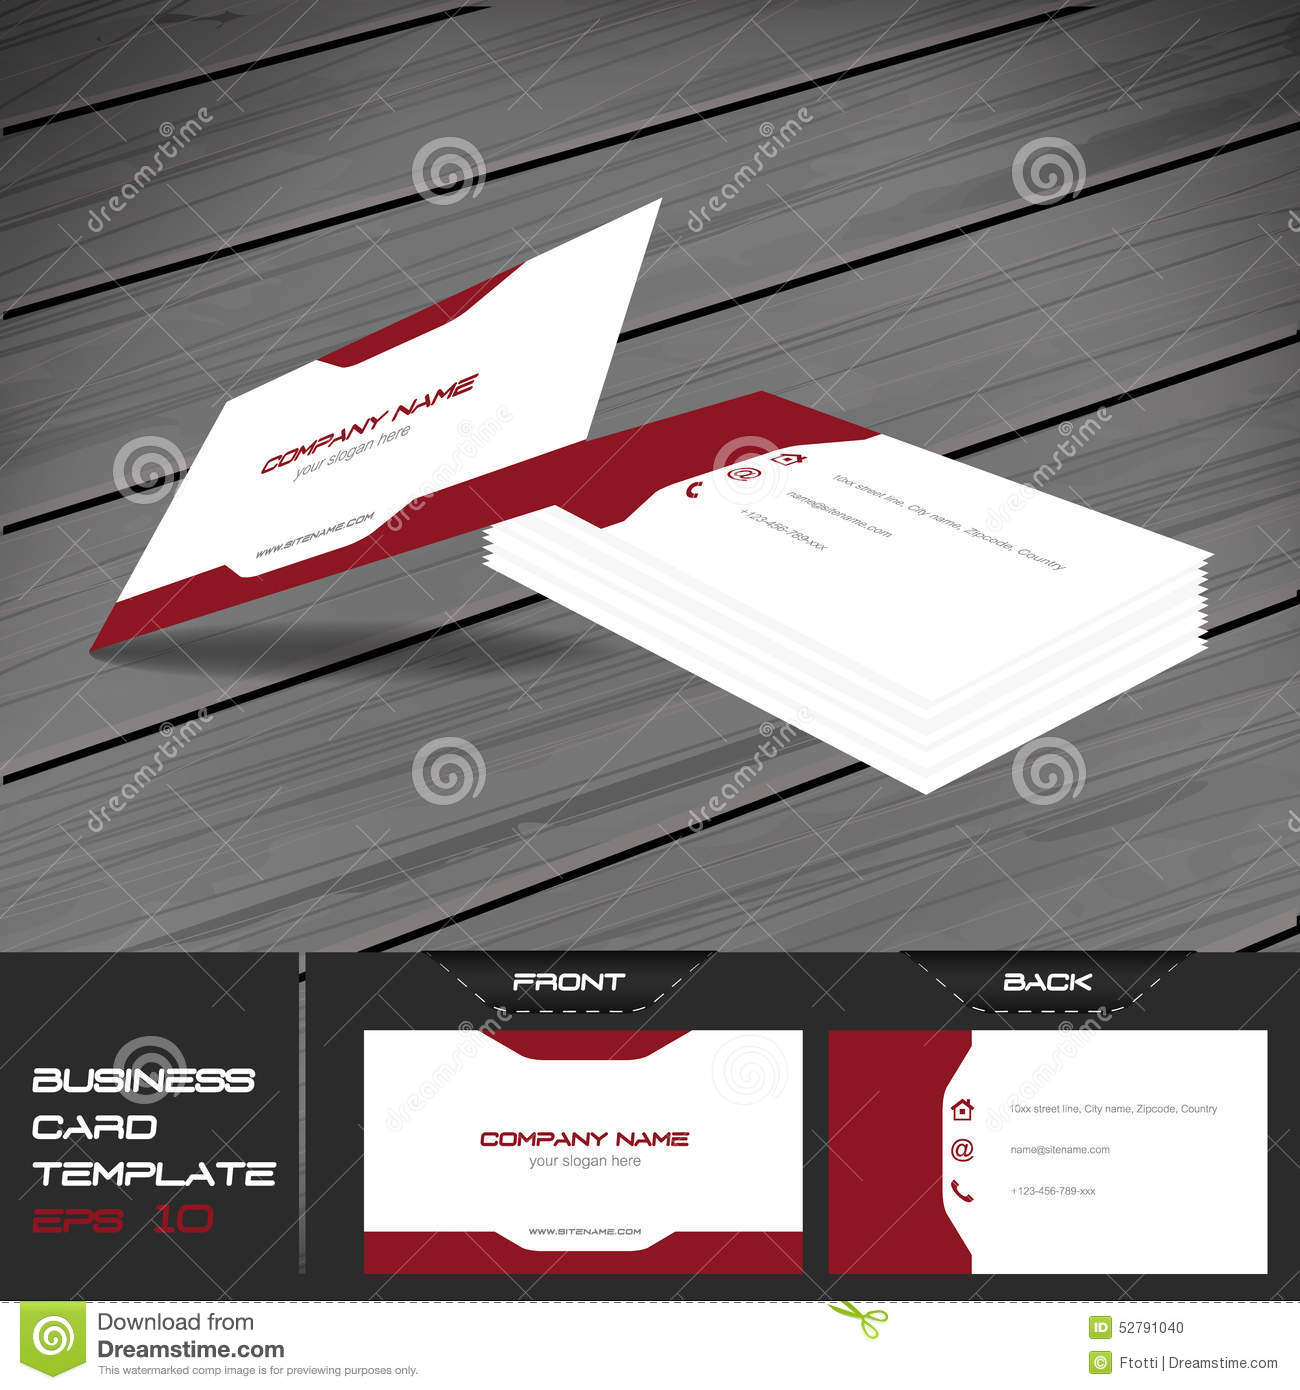 Front and back business card template word images business cards ideas front and back business card template word images business cards ideas front and back business card wajeb Choice Image